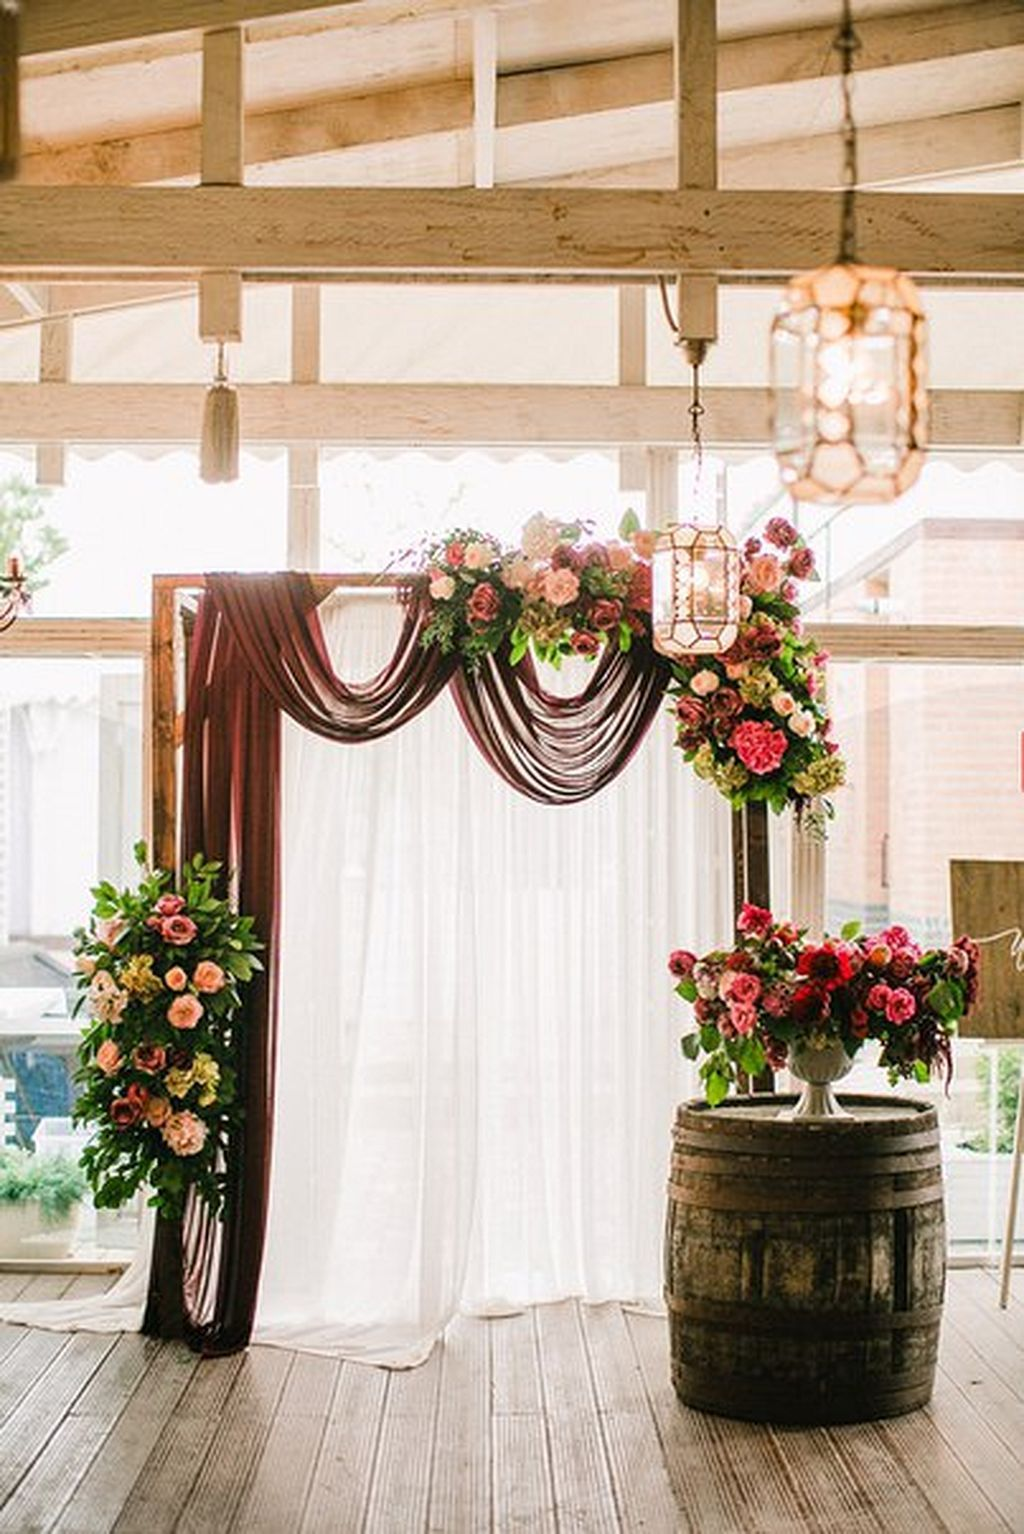 Wedding gate decoration ideas   glamorous burgundy wedding ideas   Weddings Wedding and Backdrops